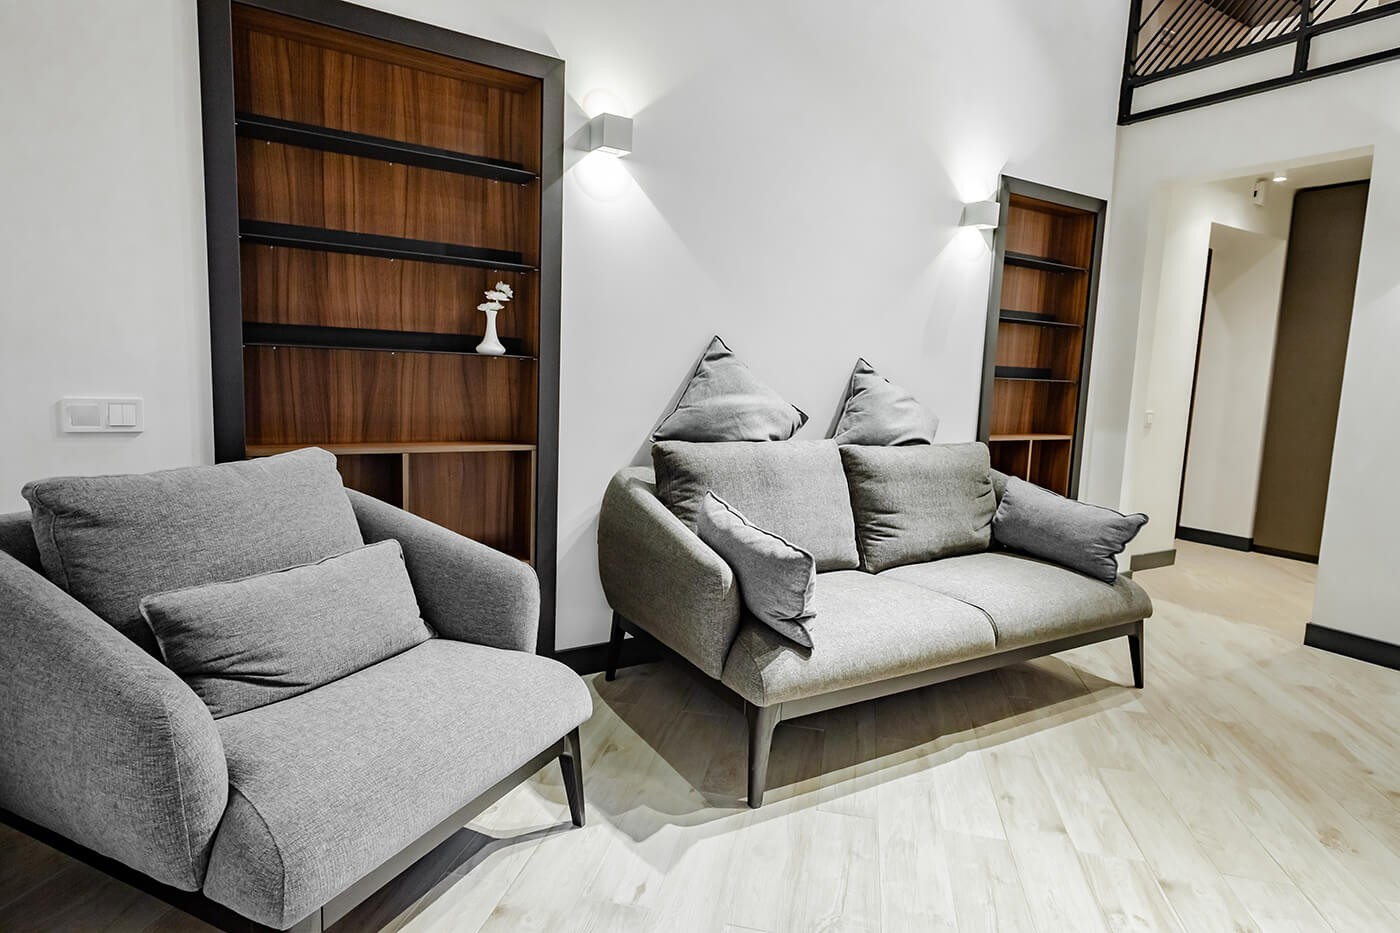 Duplex apartment Classic with a balcony in Odessa. Check-in around the clock. Online booking.